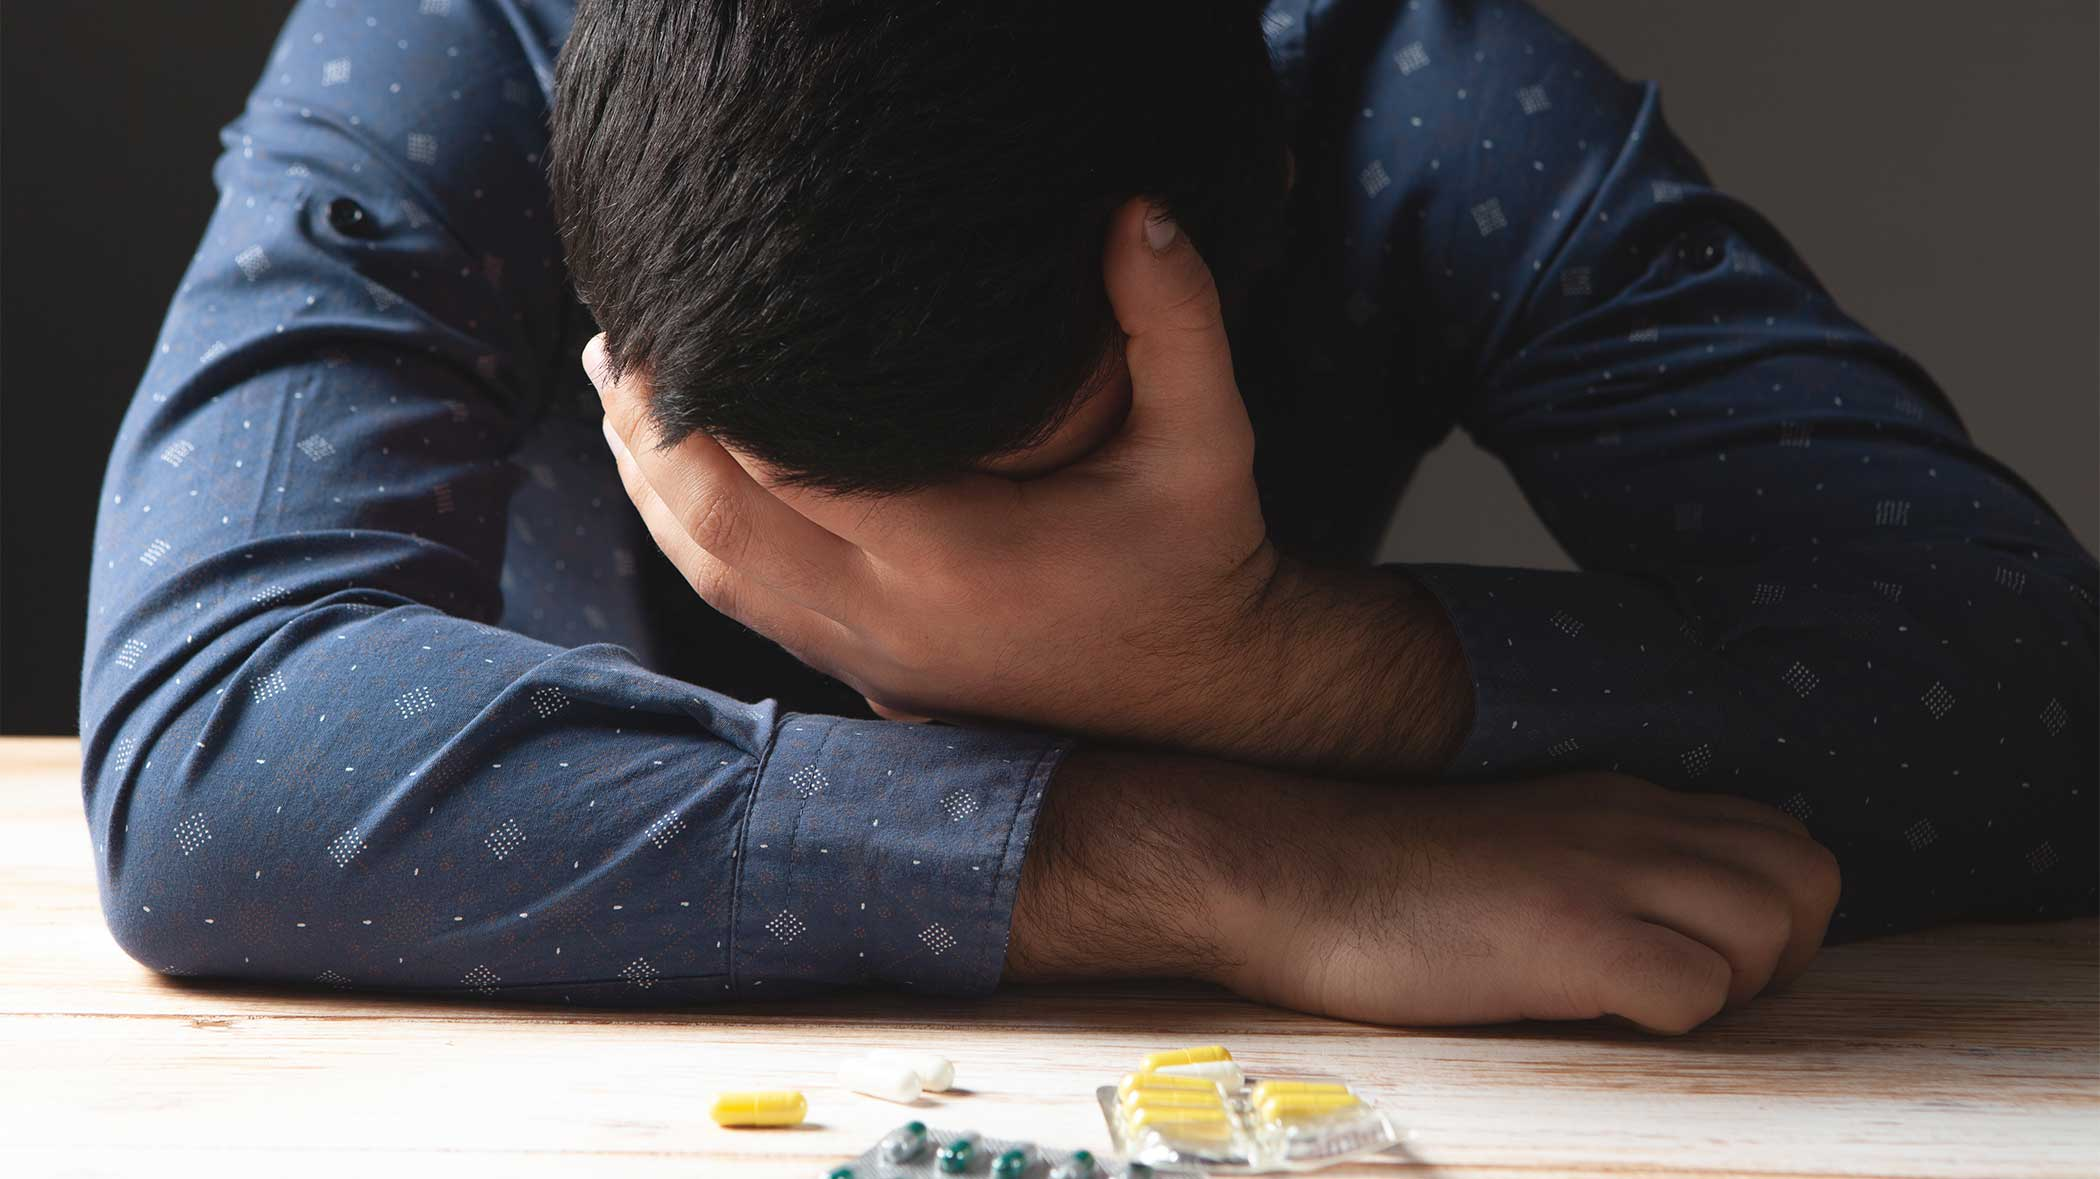 Short-Term Side Effects Of Benzodiazepines